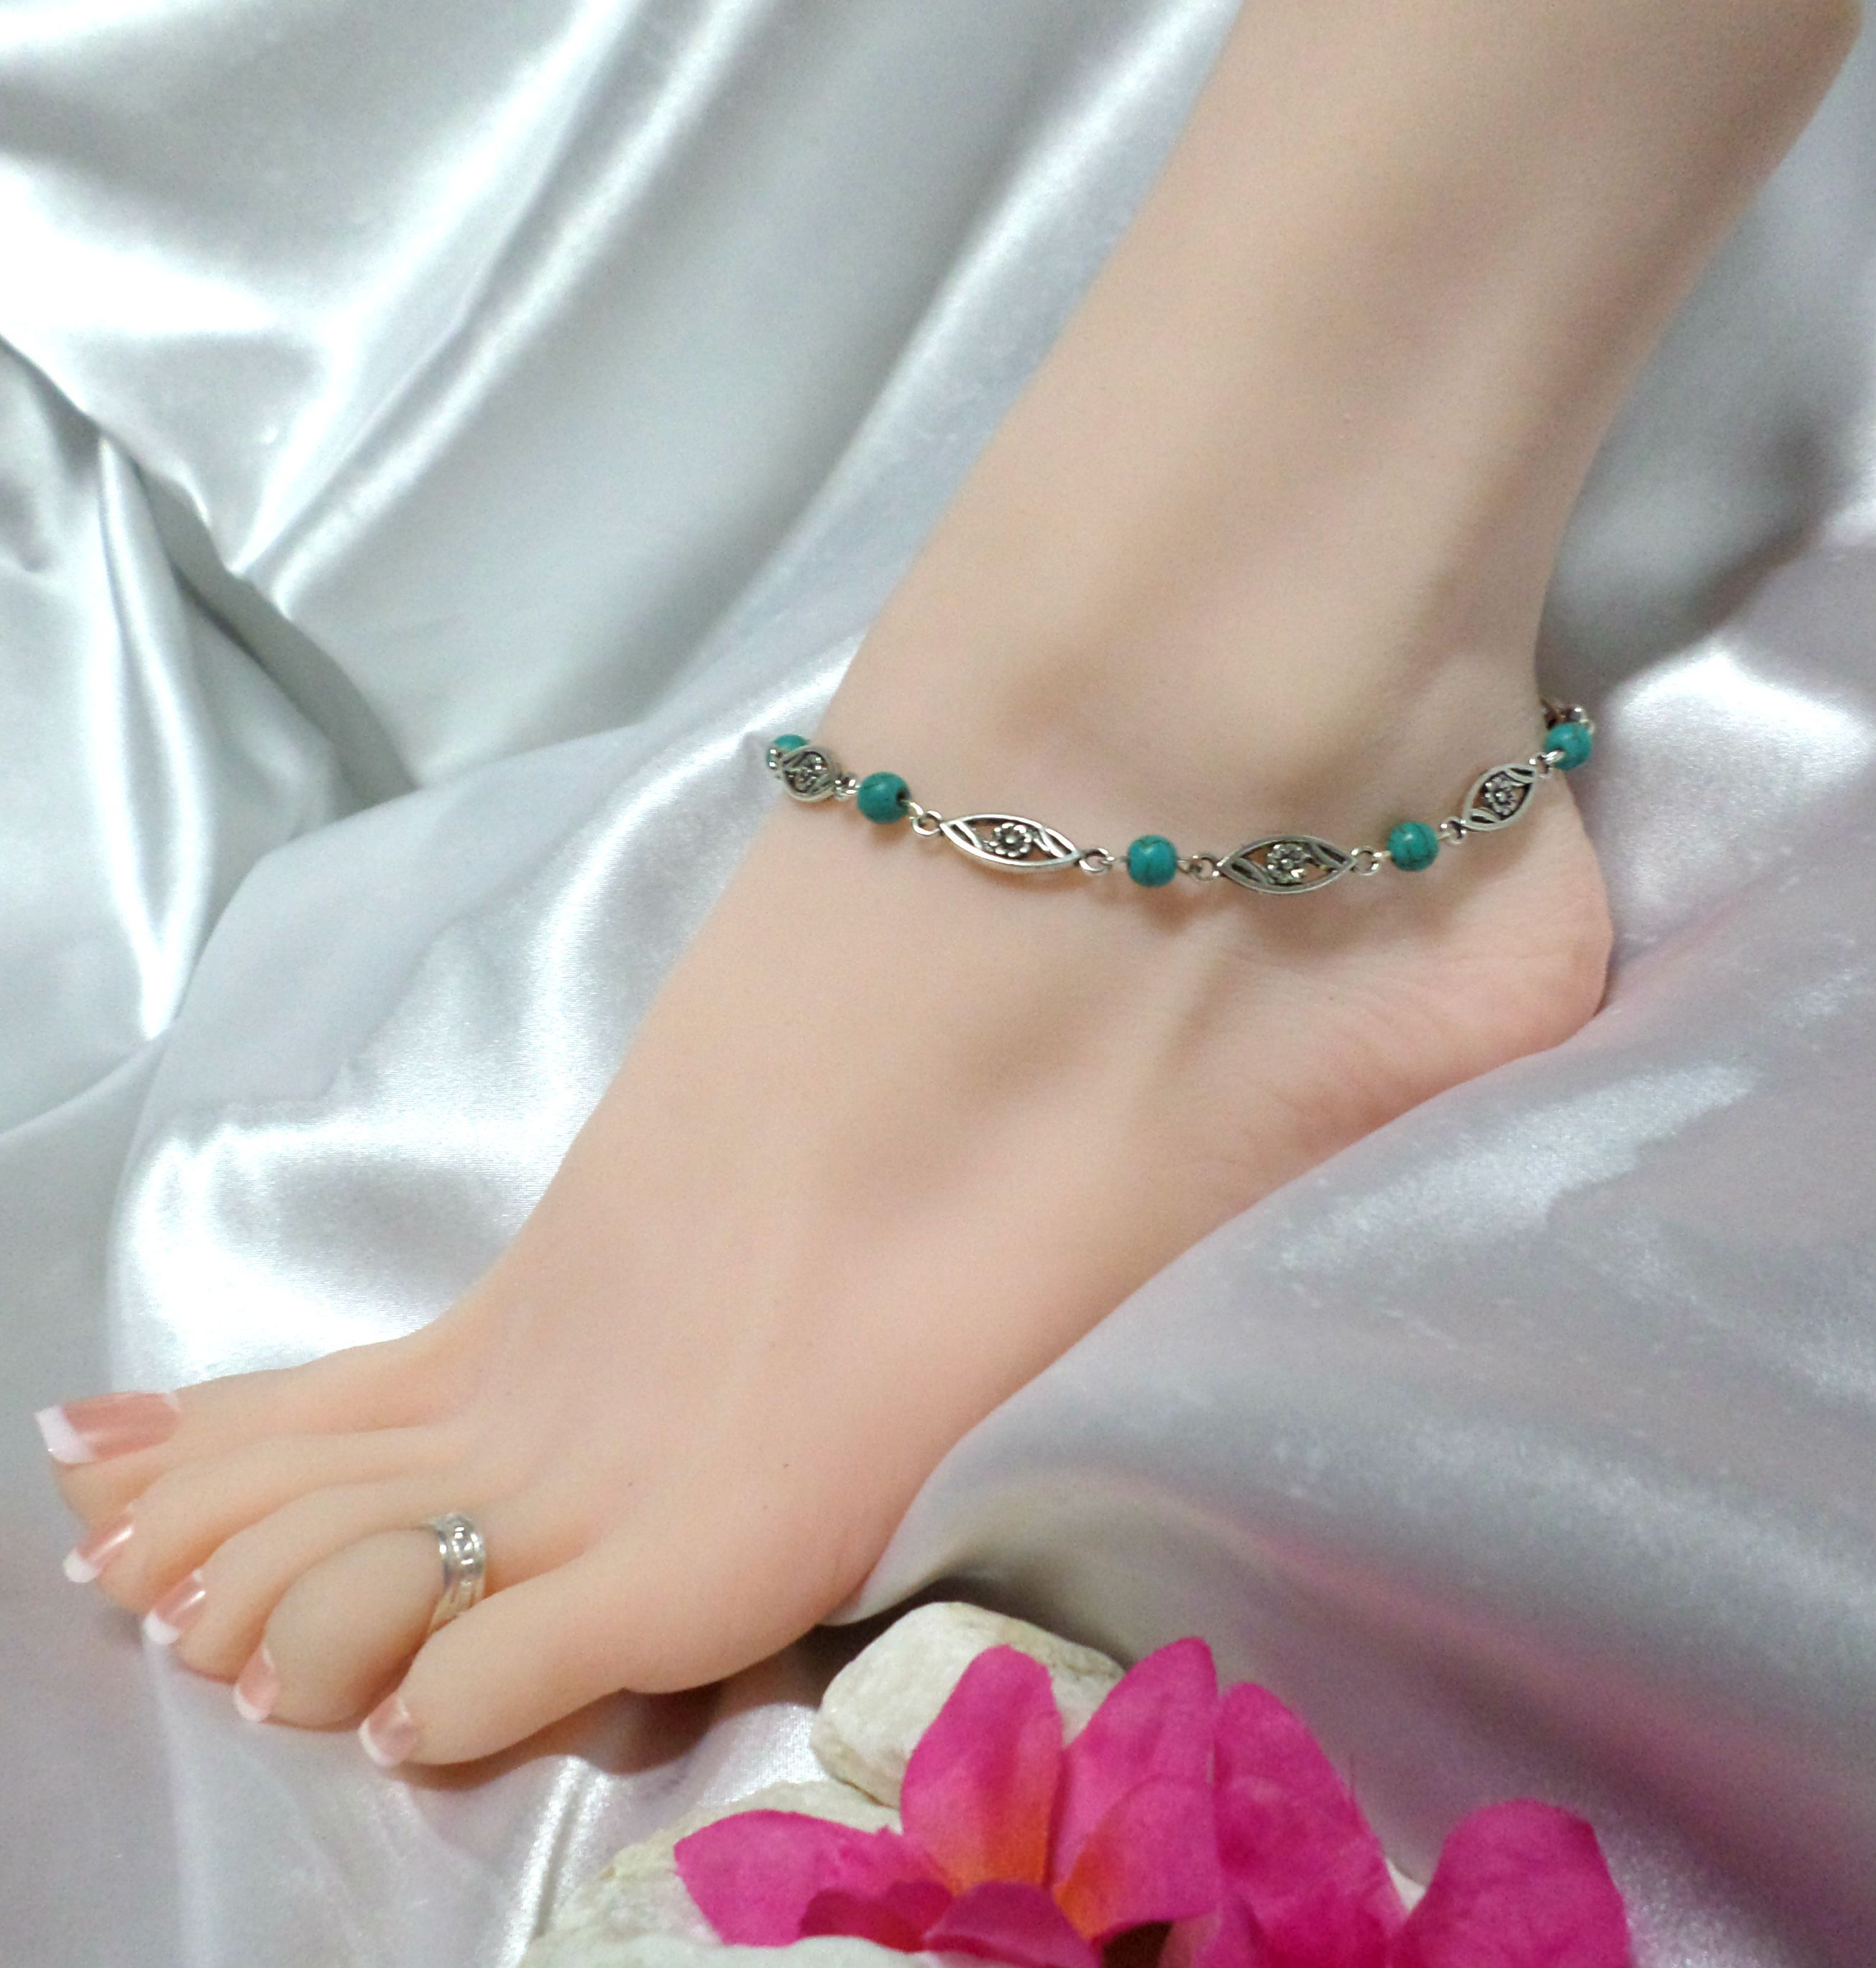 most black and of pin you bracelets borealis anklet ankle bathe swim can aurora popular our set